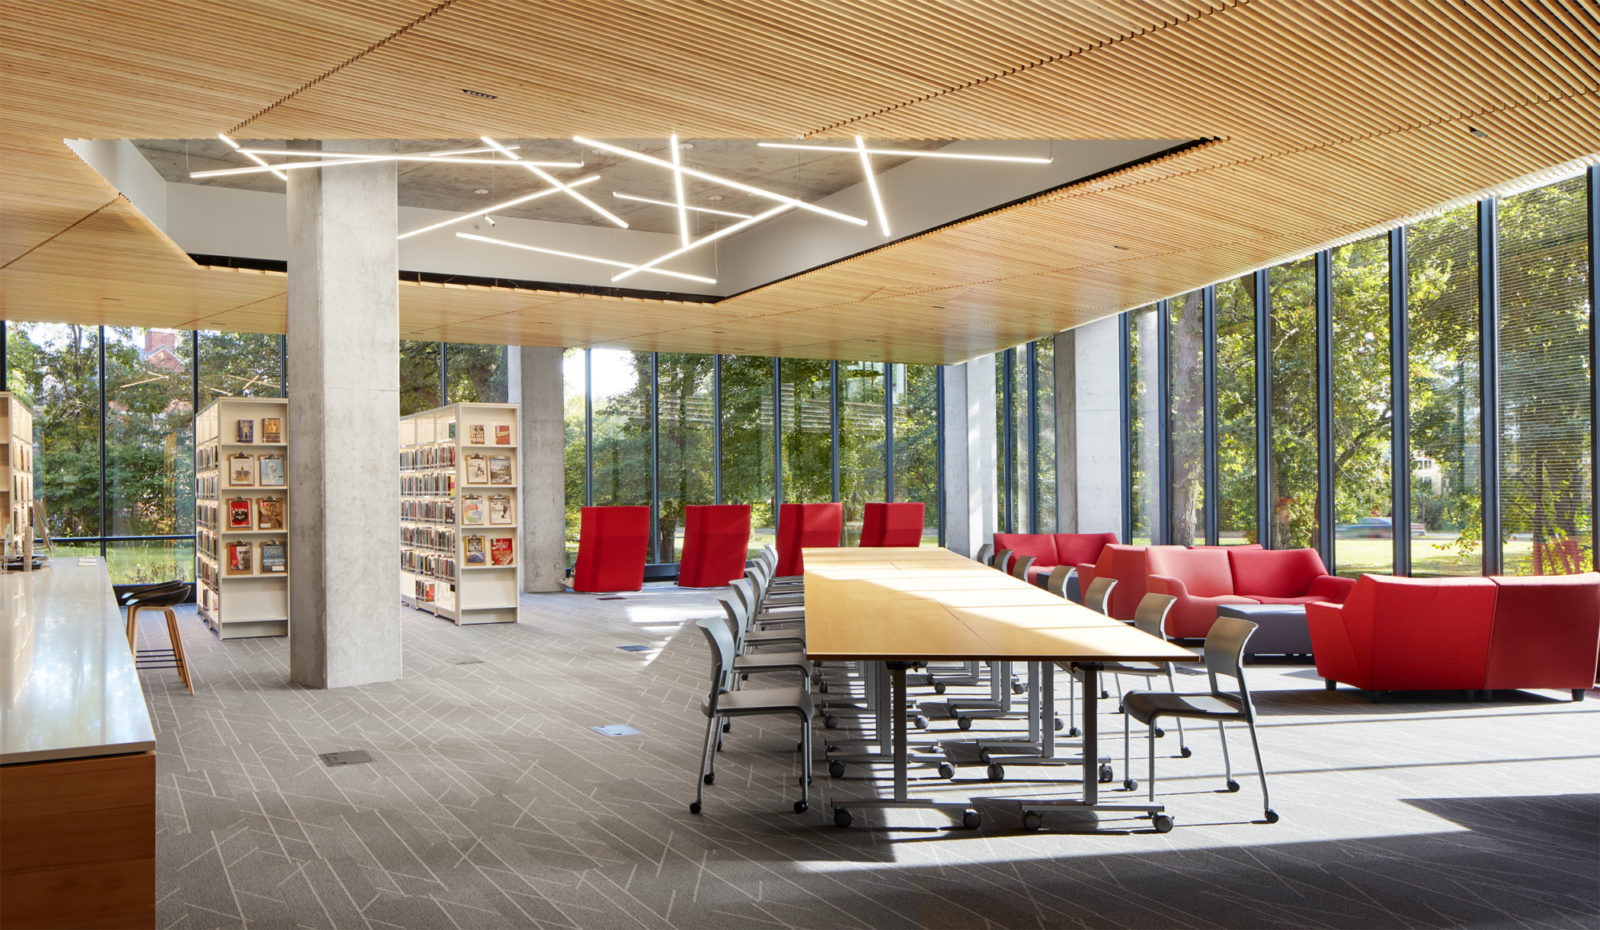 A library space with a long table and red chairs